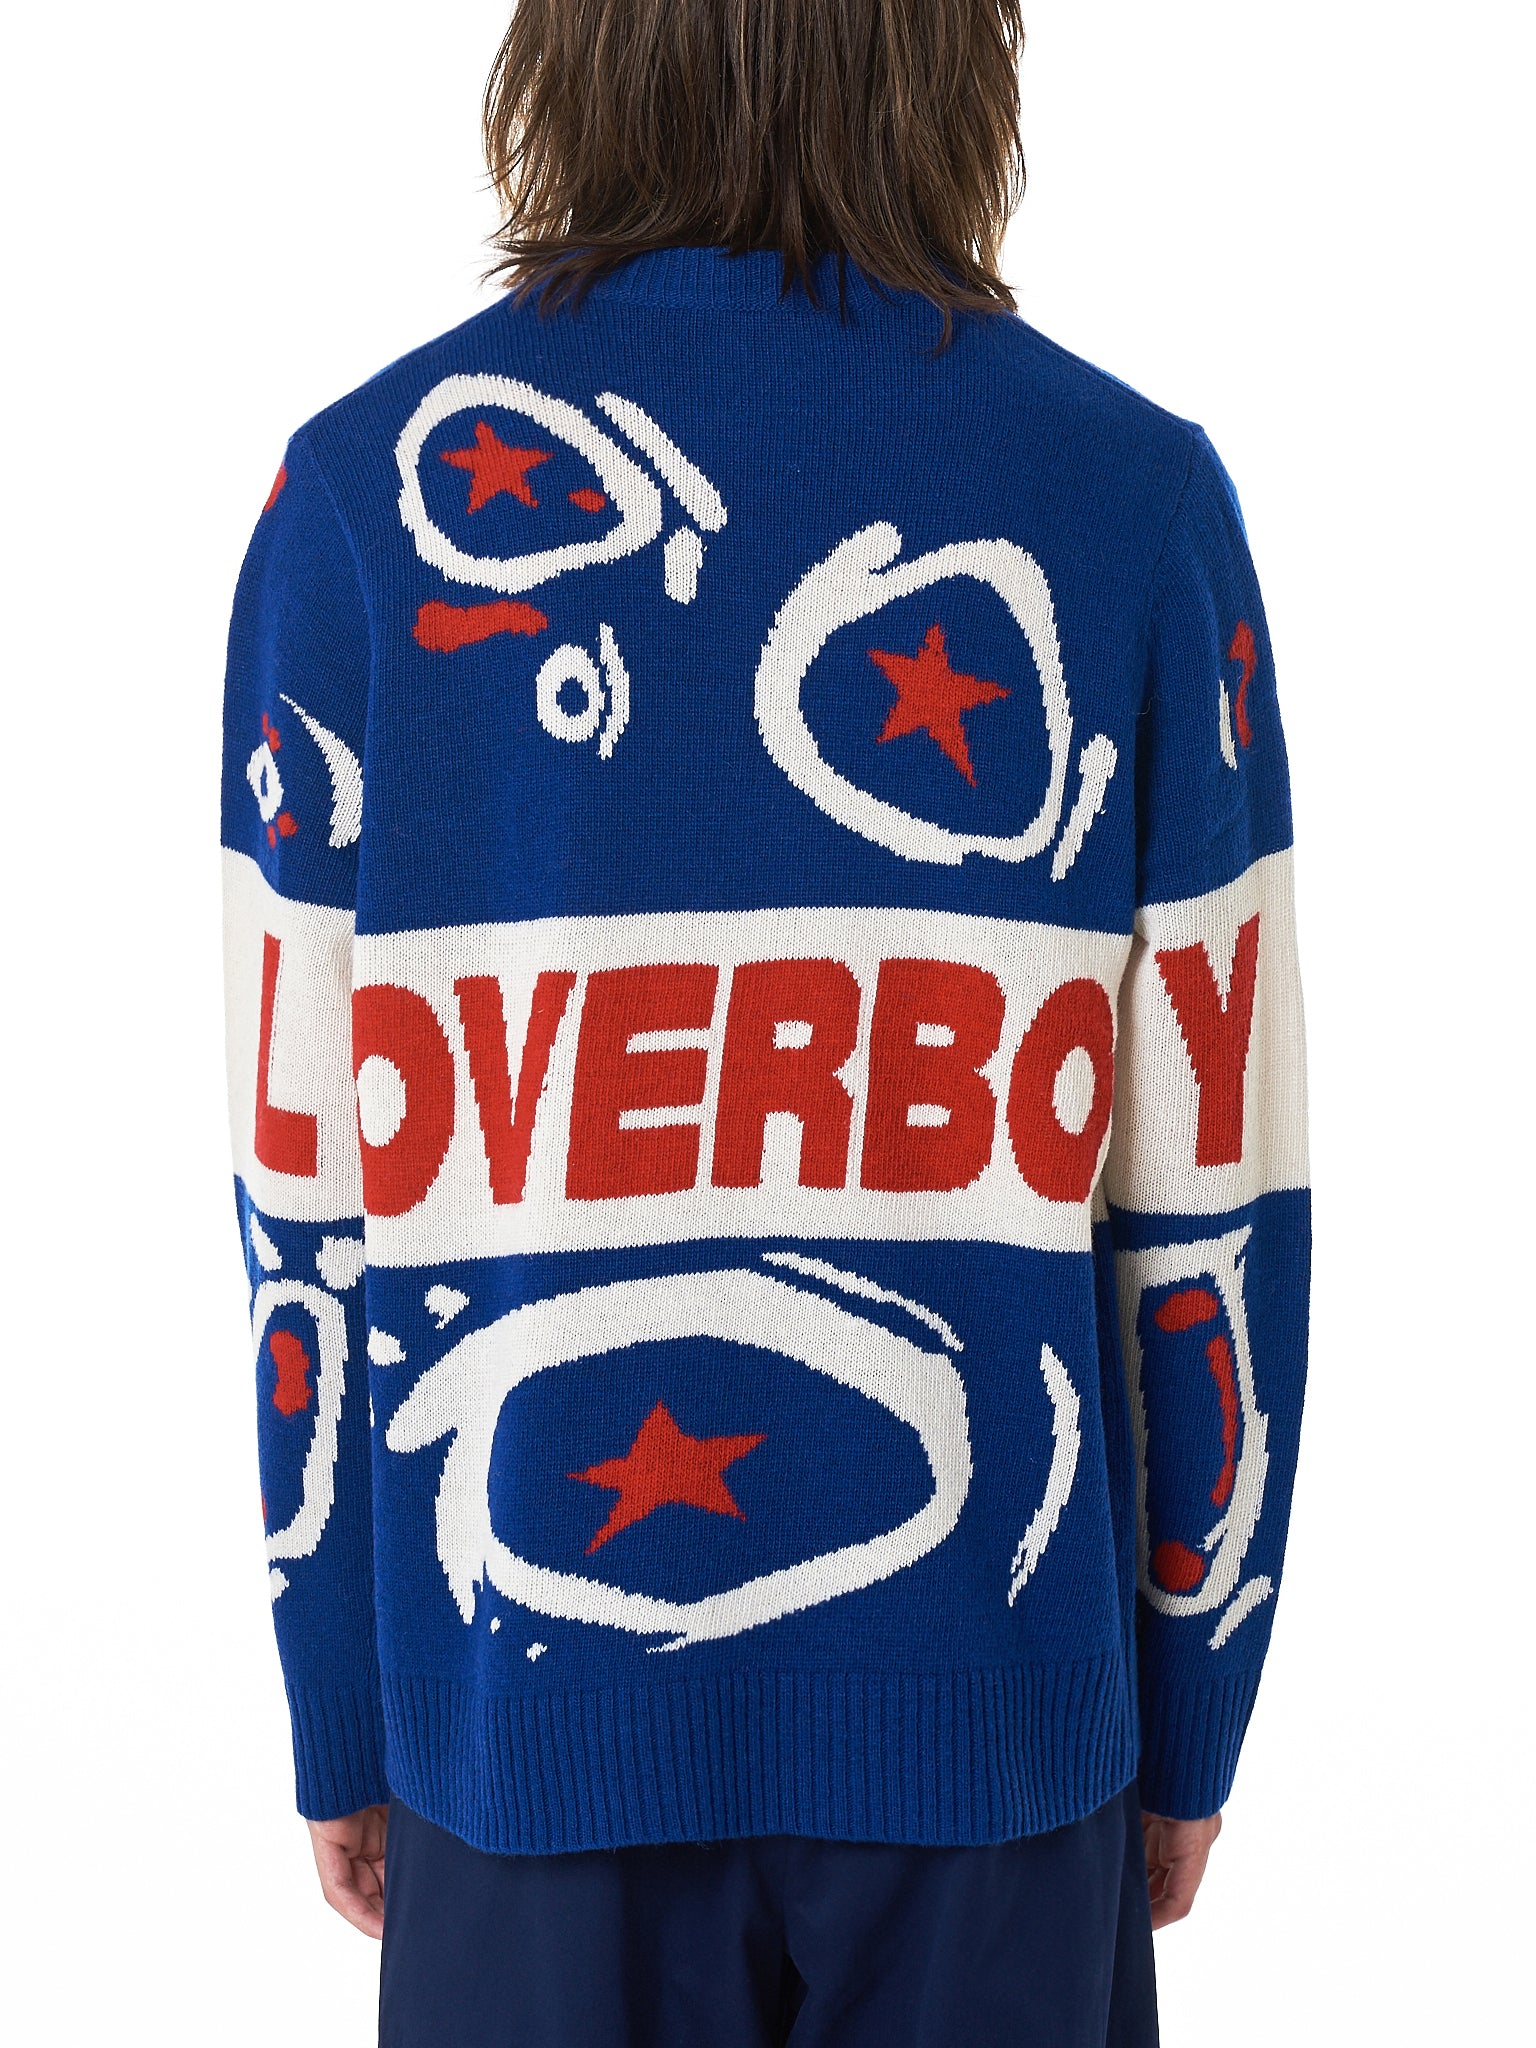 Charles Jeffrey Loverboy Sweater - Hlorenzo Back